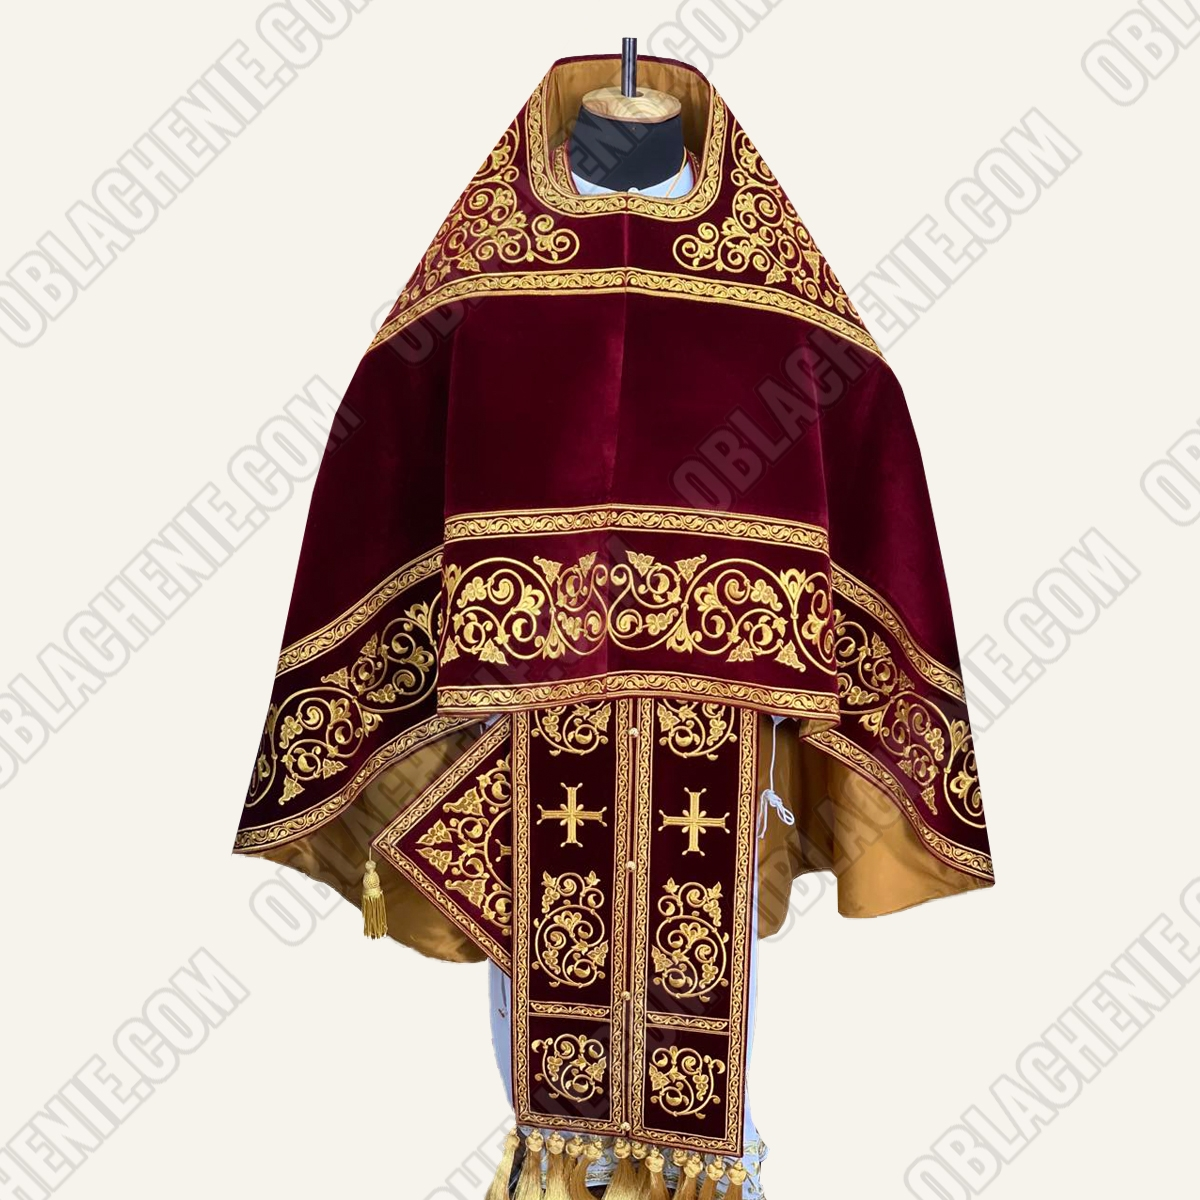 EMBROIDERED PRIEST'S VESTMENTS 11076